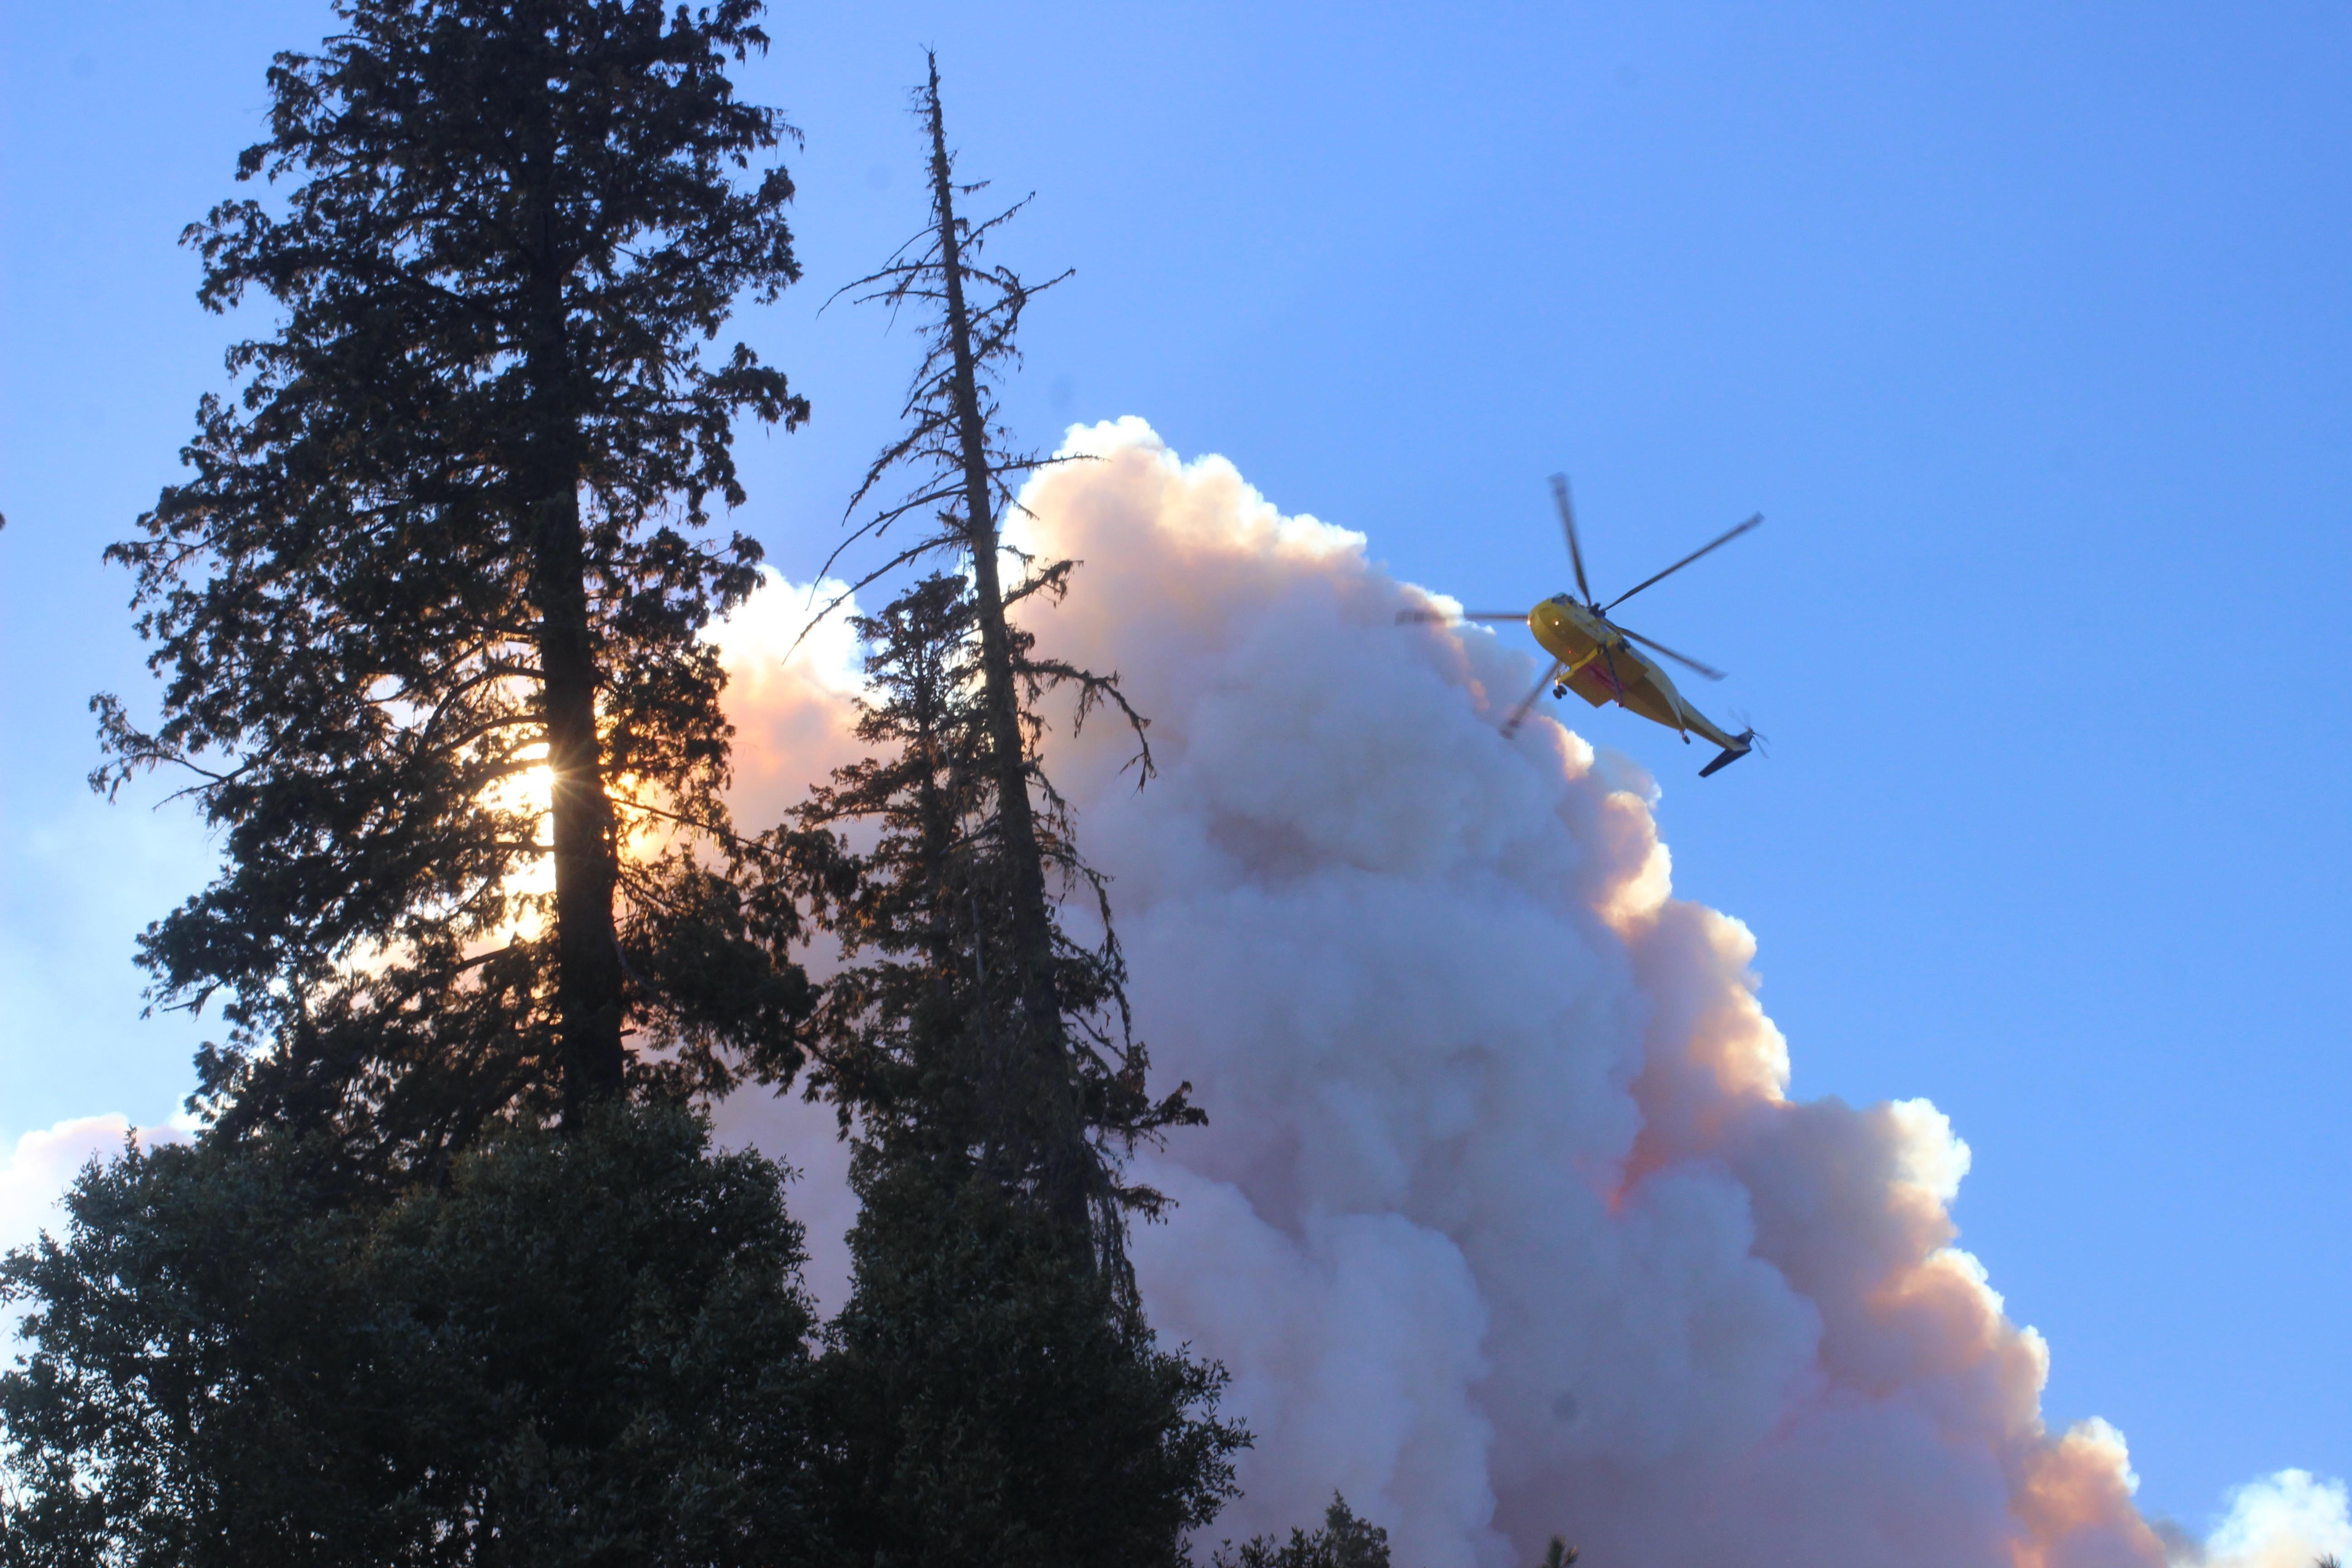 Helicopter flying near smoke plume. Photo Credit: Mike McMillan/USFS